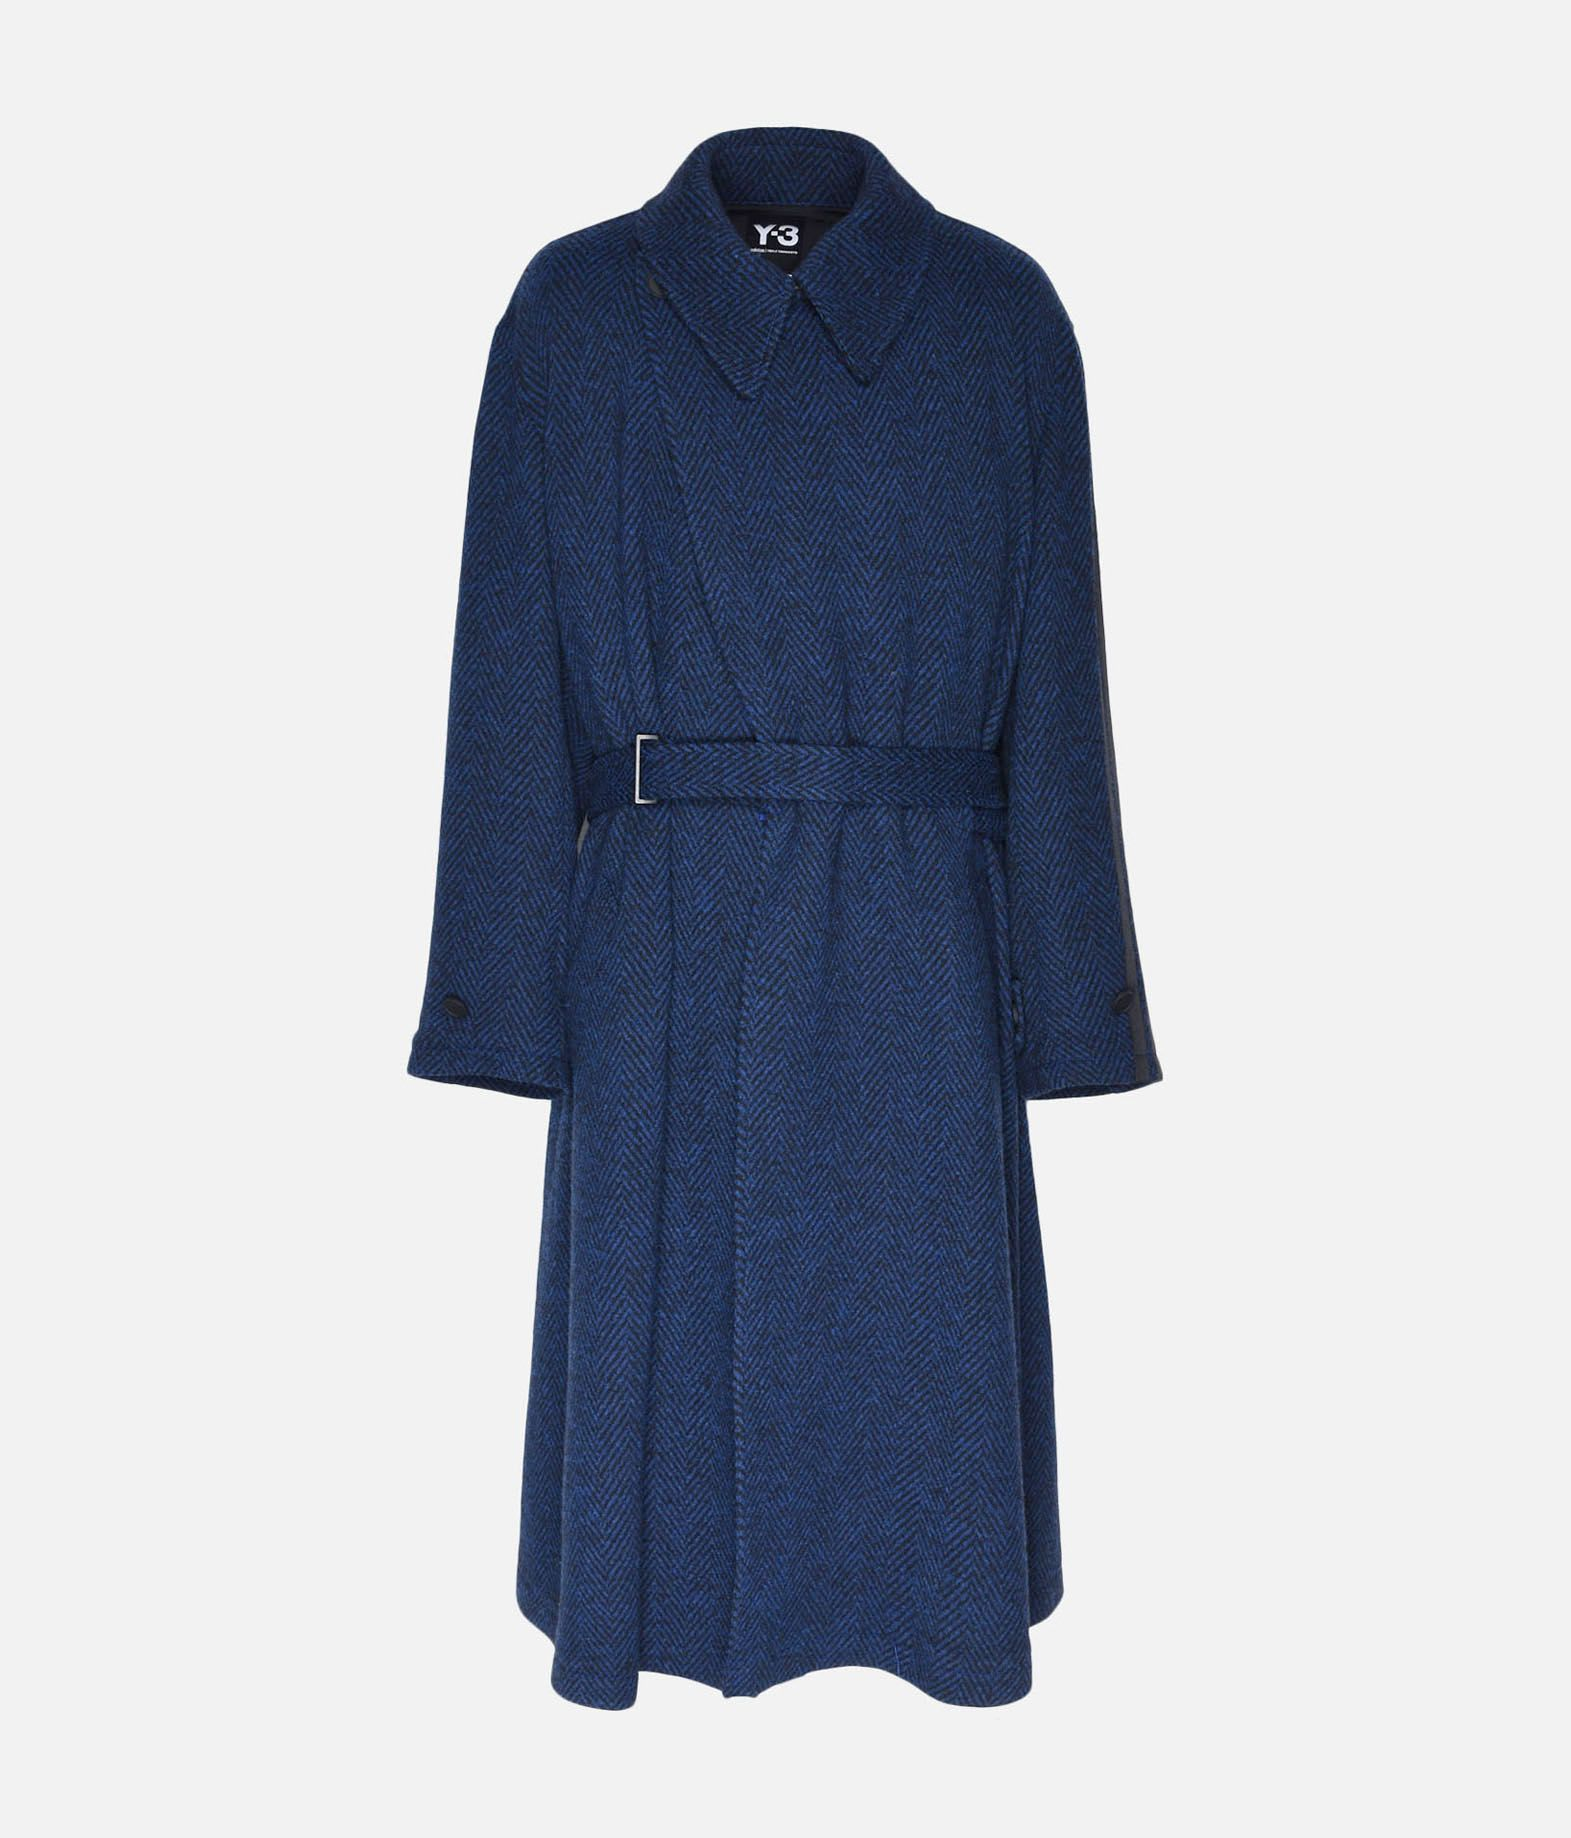 Y-3 Y-3 Tailored Wool Coat コート メンズ f